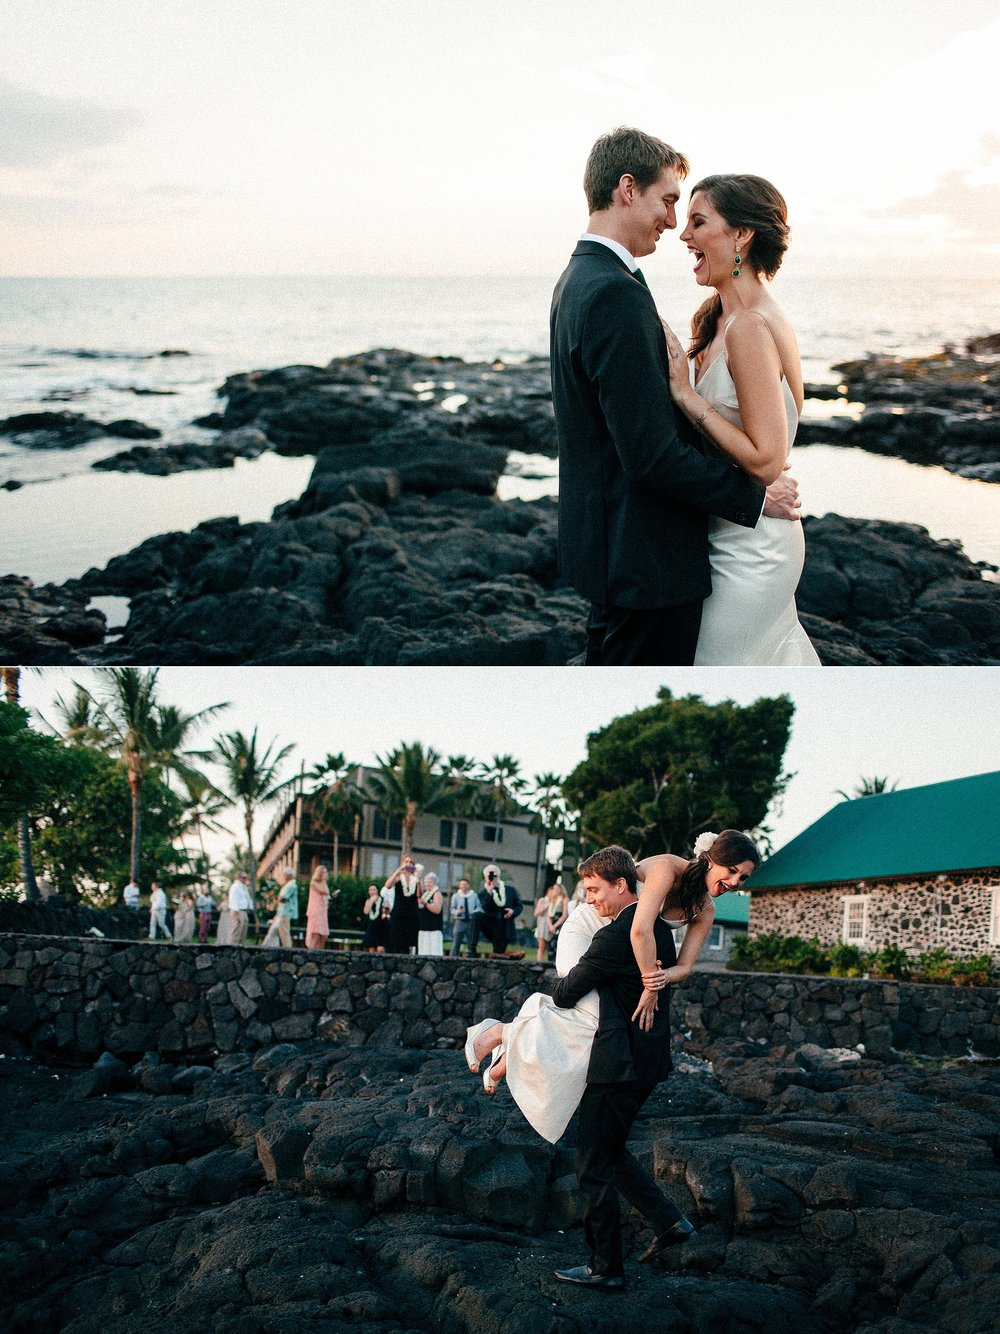 Kona-Big-Island-Hawaii-New-Years-Eve-Wedding-with-Ceremony-at-Living-Stones-Church-and-Reception-at-Daylight-Mind-Coffee_0022.jpg